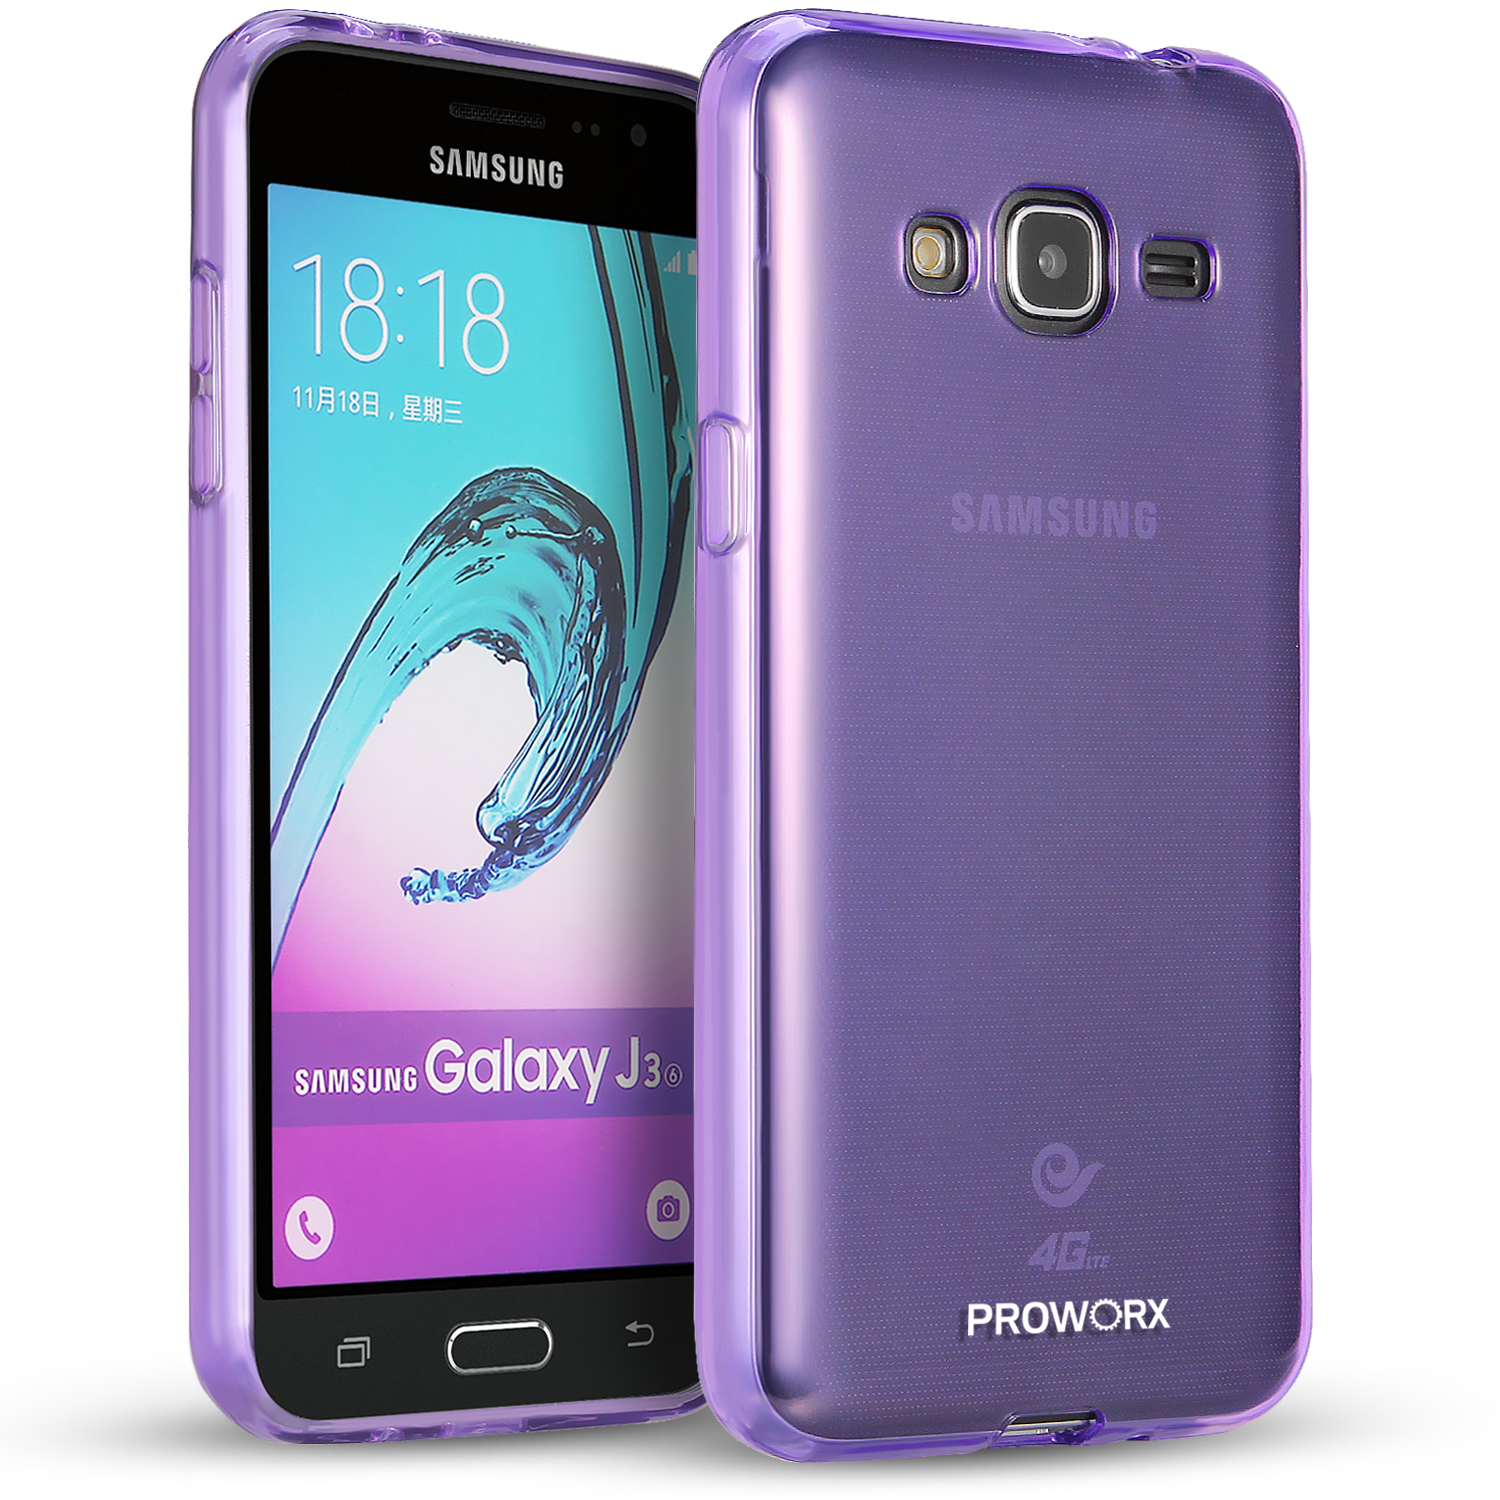 Samsung Galaxy J3 2016 Amp Prime Express Prime Purple ProWorx Ultra Slim Thin Scratch Resistant TPU Silicone Case Cover